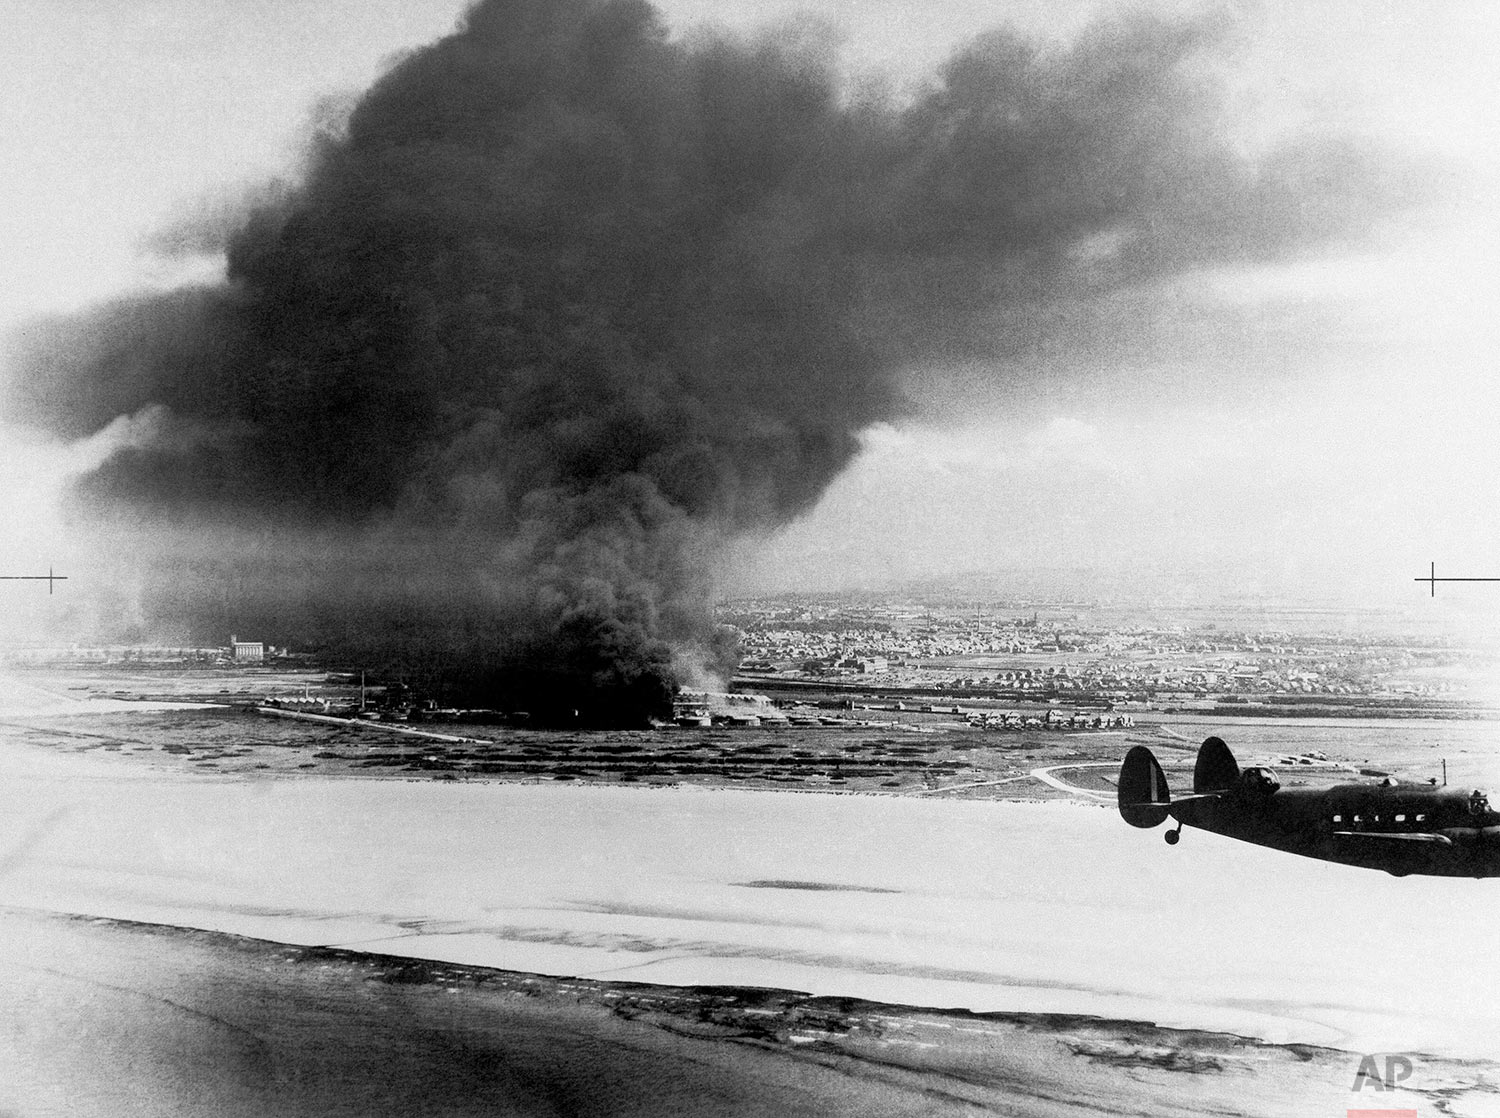 Dunkirk from the shore showing two burning oil tanks with Lockheed Hudson coastal command patrol plane in foreground on June 10, 1940 in France. (AP Photo)